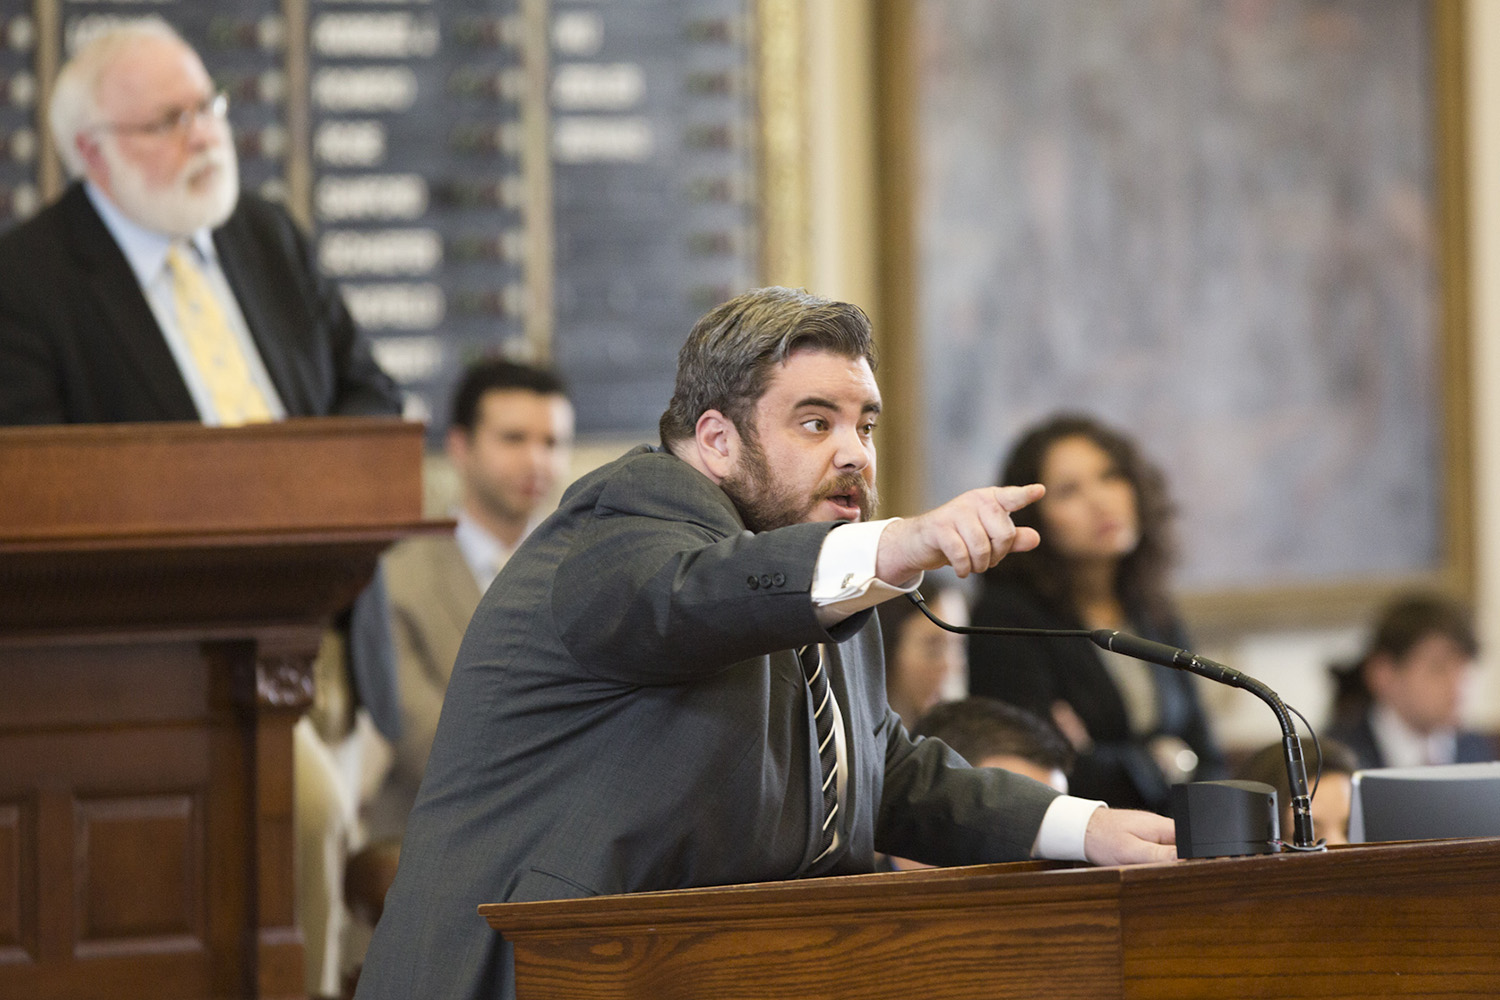 State Rep. Jonathan Stickland, R-Bedford, in a heated debate with Rep. Dennis Bonnen, R-Angleton, about property tax legislation on May 20, 2017.